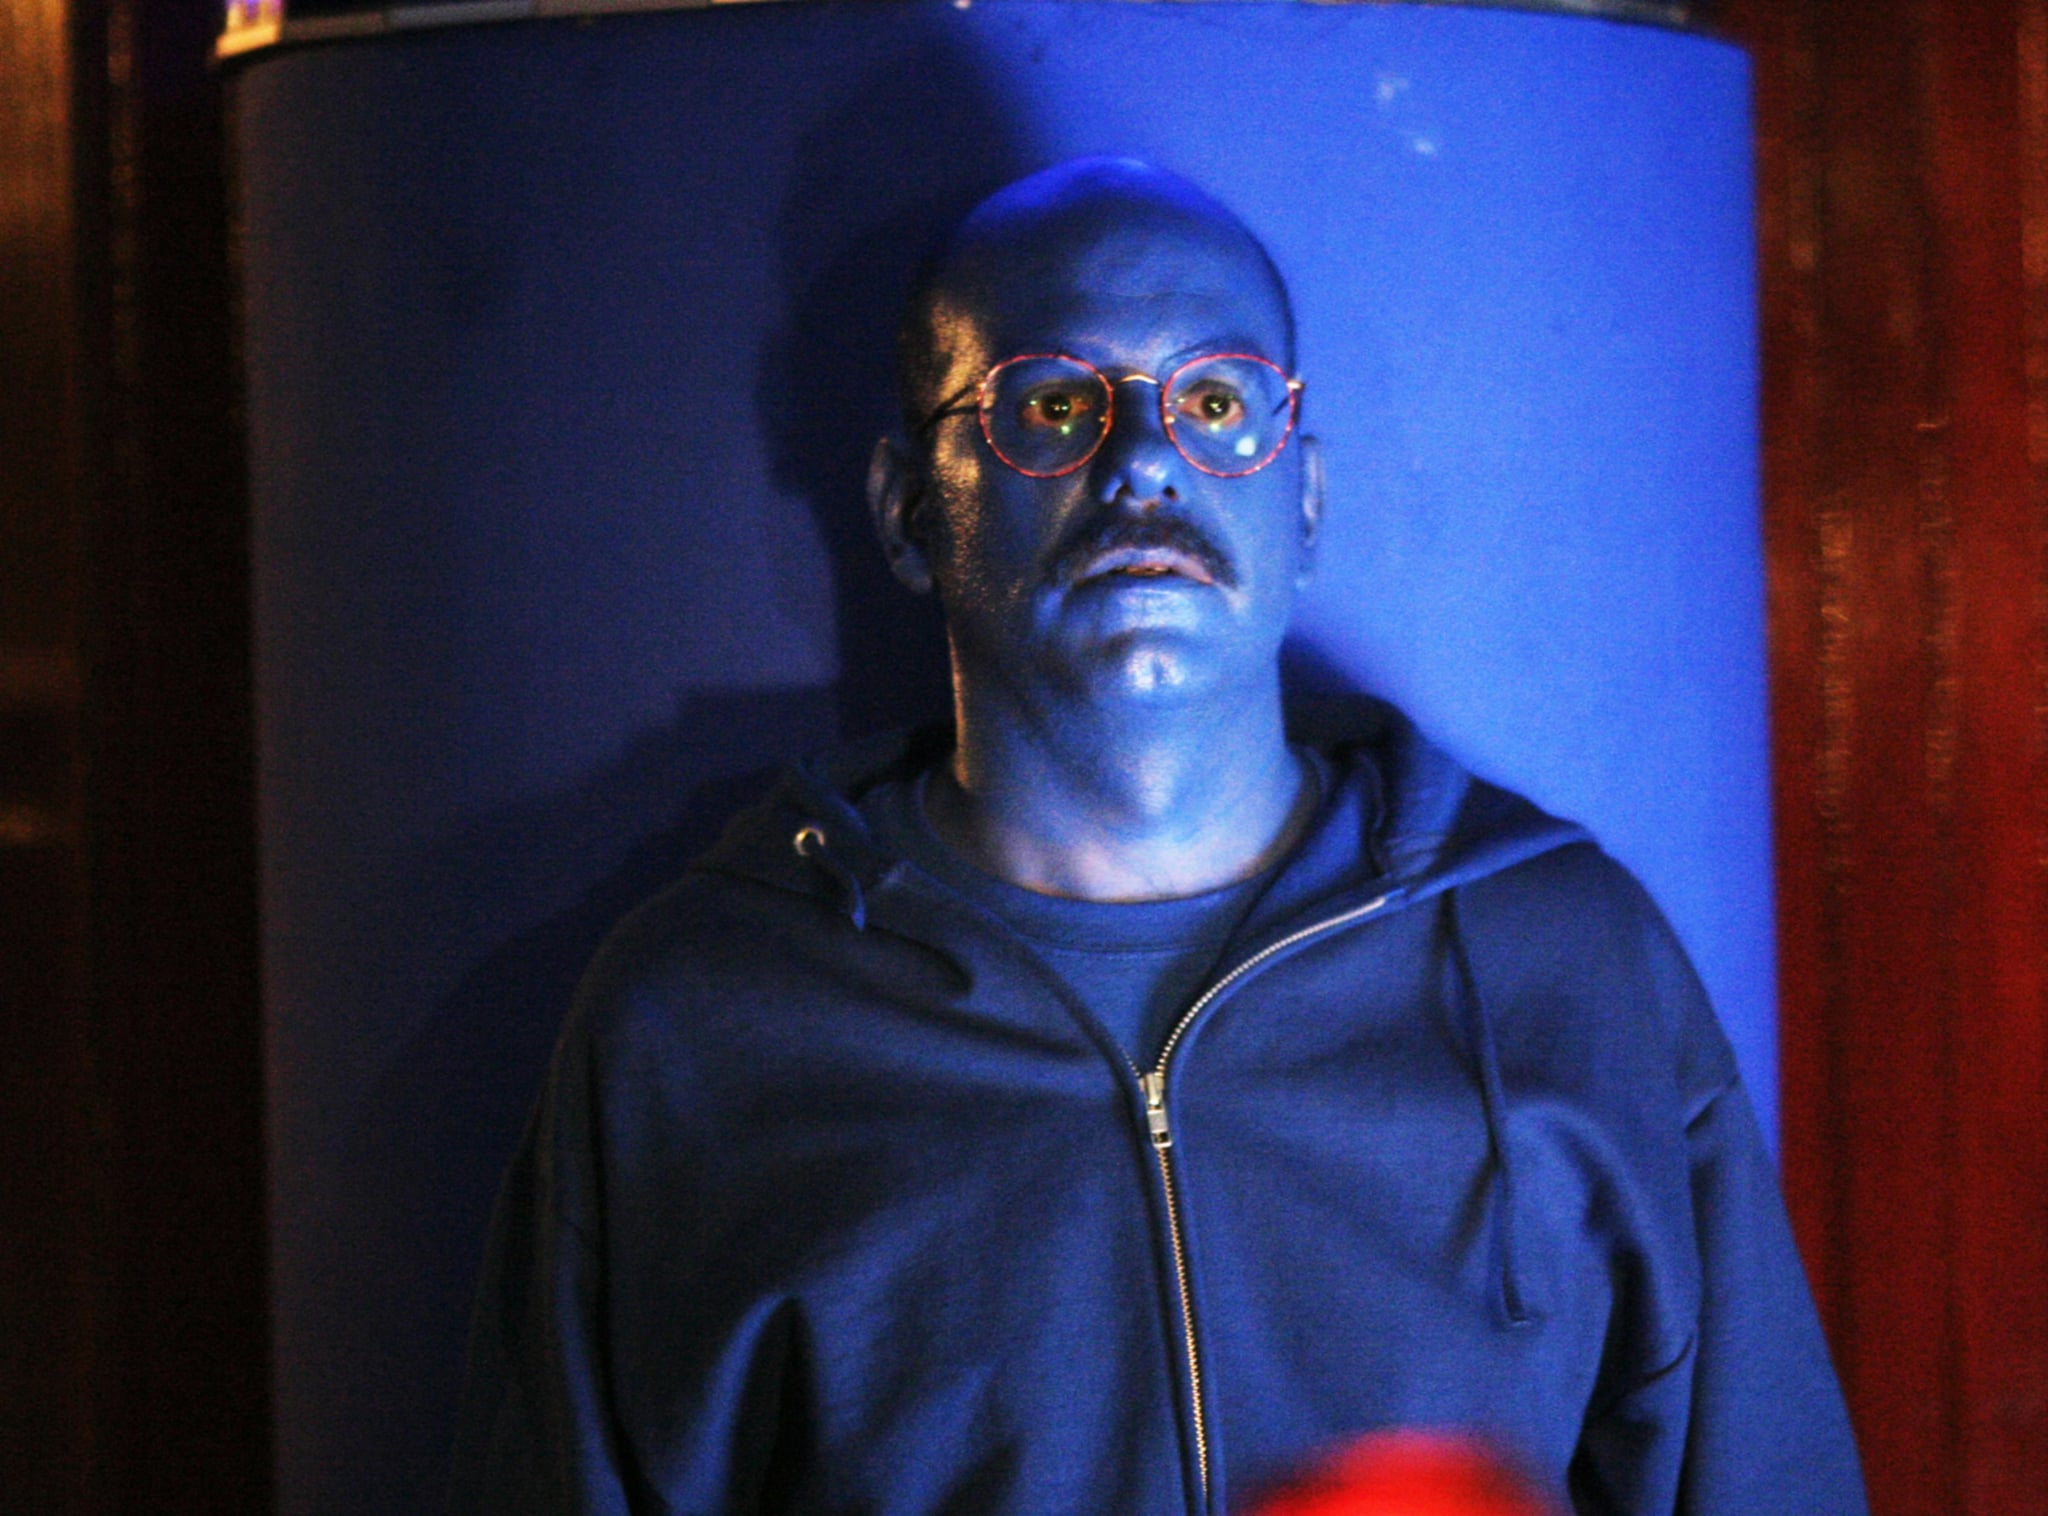 ARRESTED DEVELOPMENT, David Cross, 'The One Where They Build A House', (Season 2), 2003-, photo: Sam Urdank/Fox, TM and Copyright  20th Century Fox Film Corp. All rights reserved, Courtesy: Everett Collection